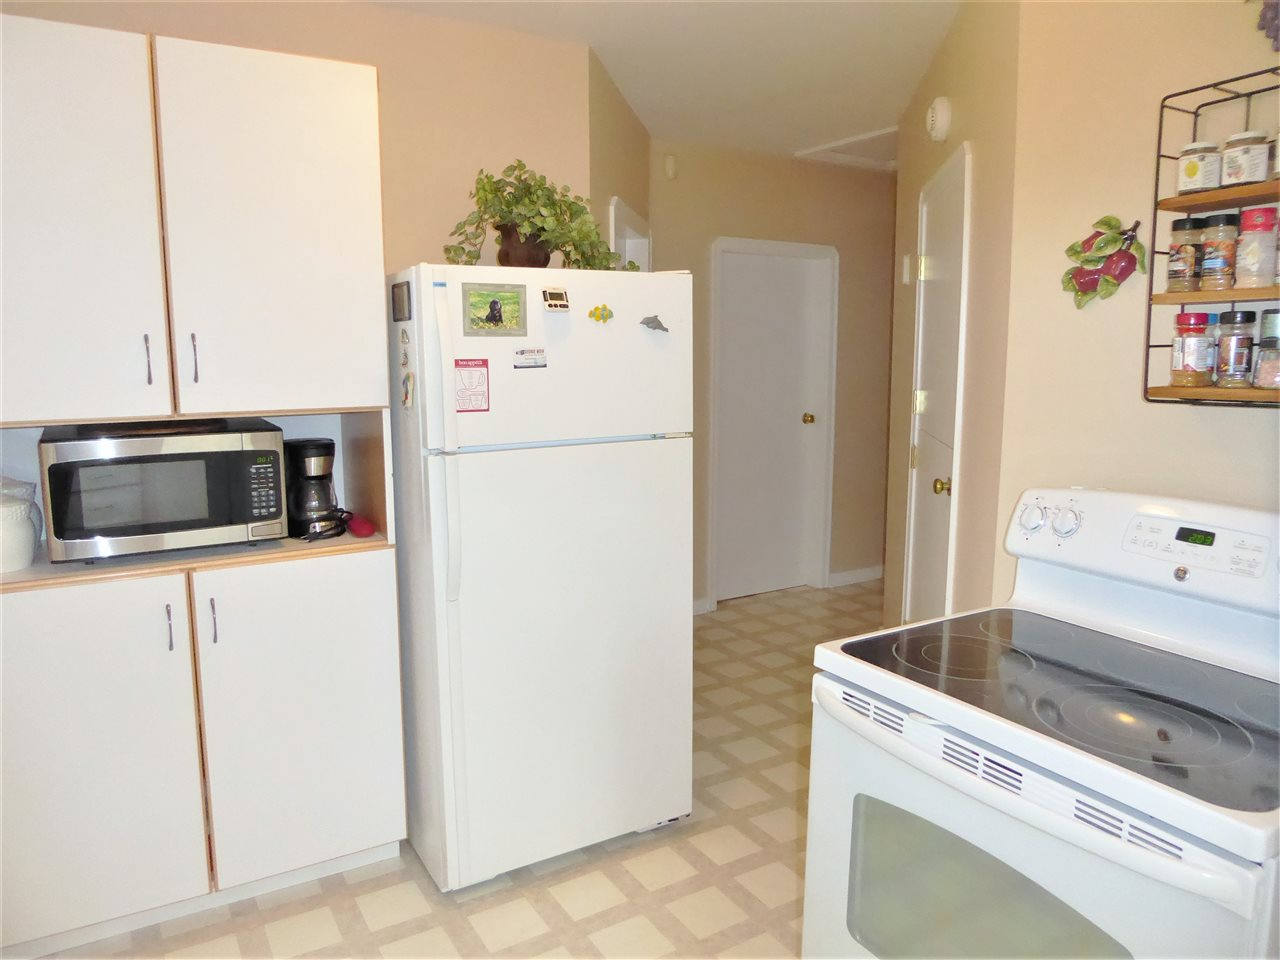 Kitchen small appliances edmonton - 11623 126 Street Nw Edmonton T5m 0r9 Zone 07